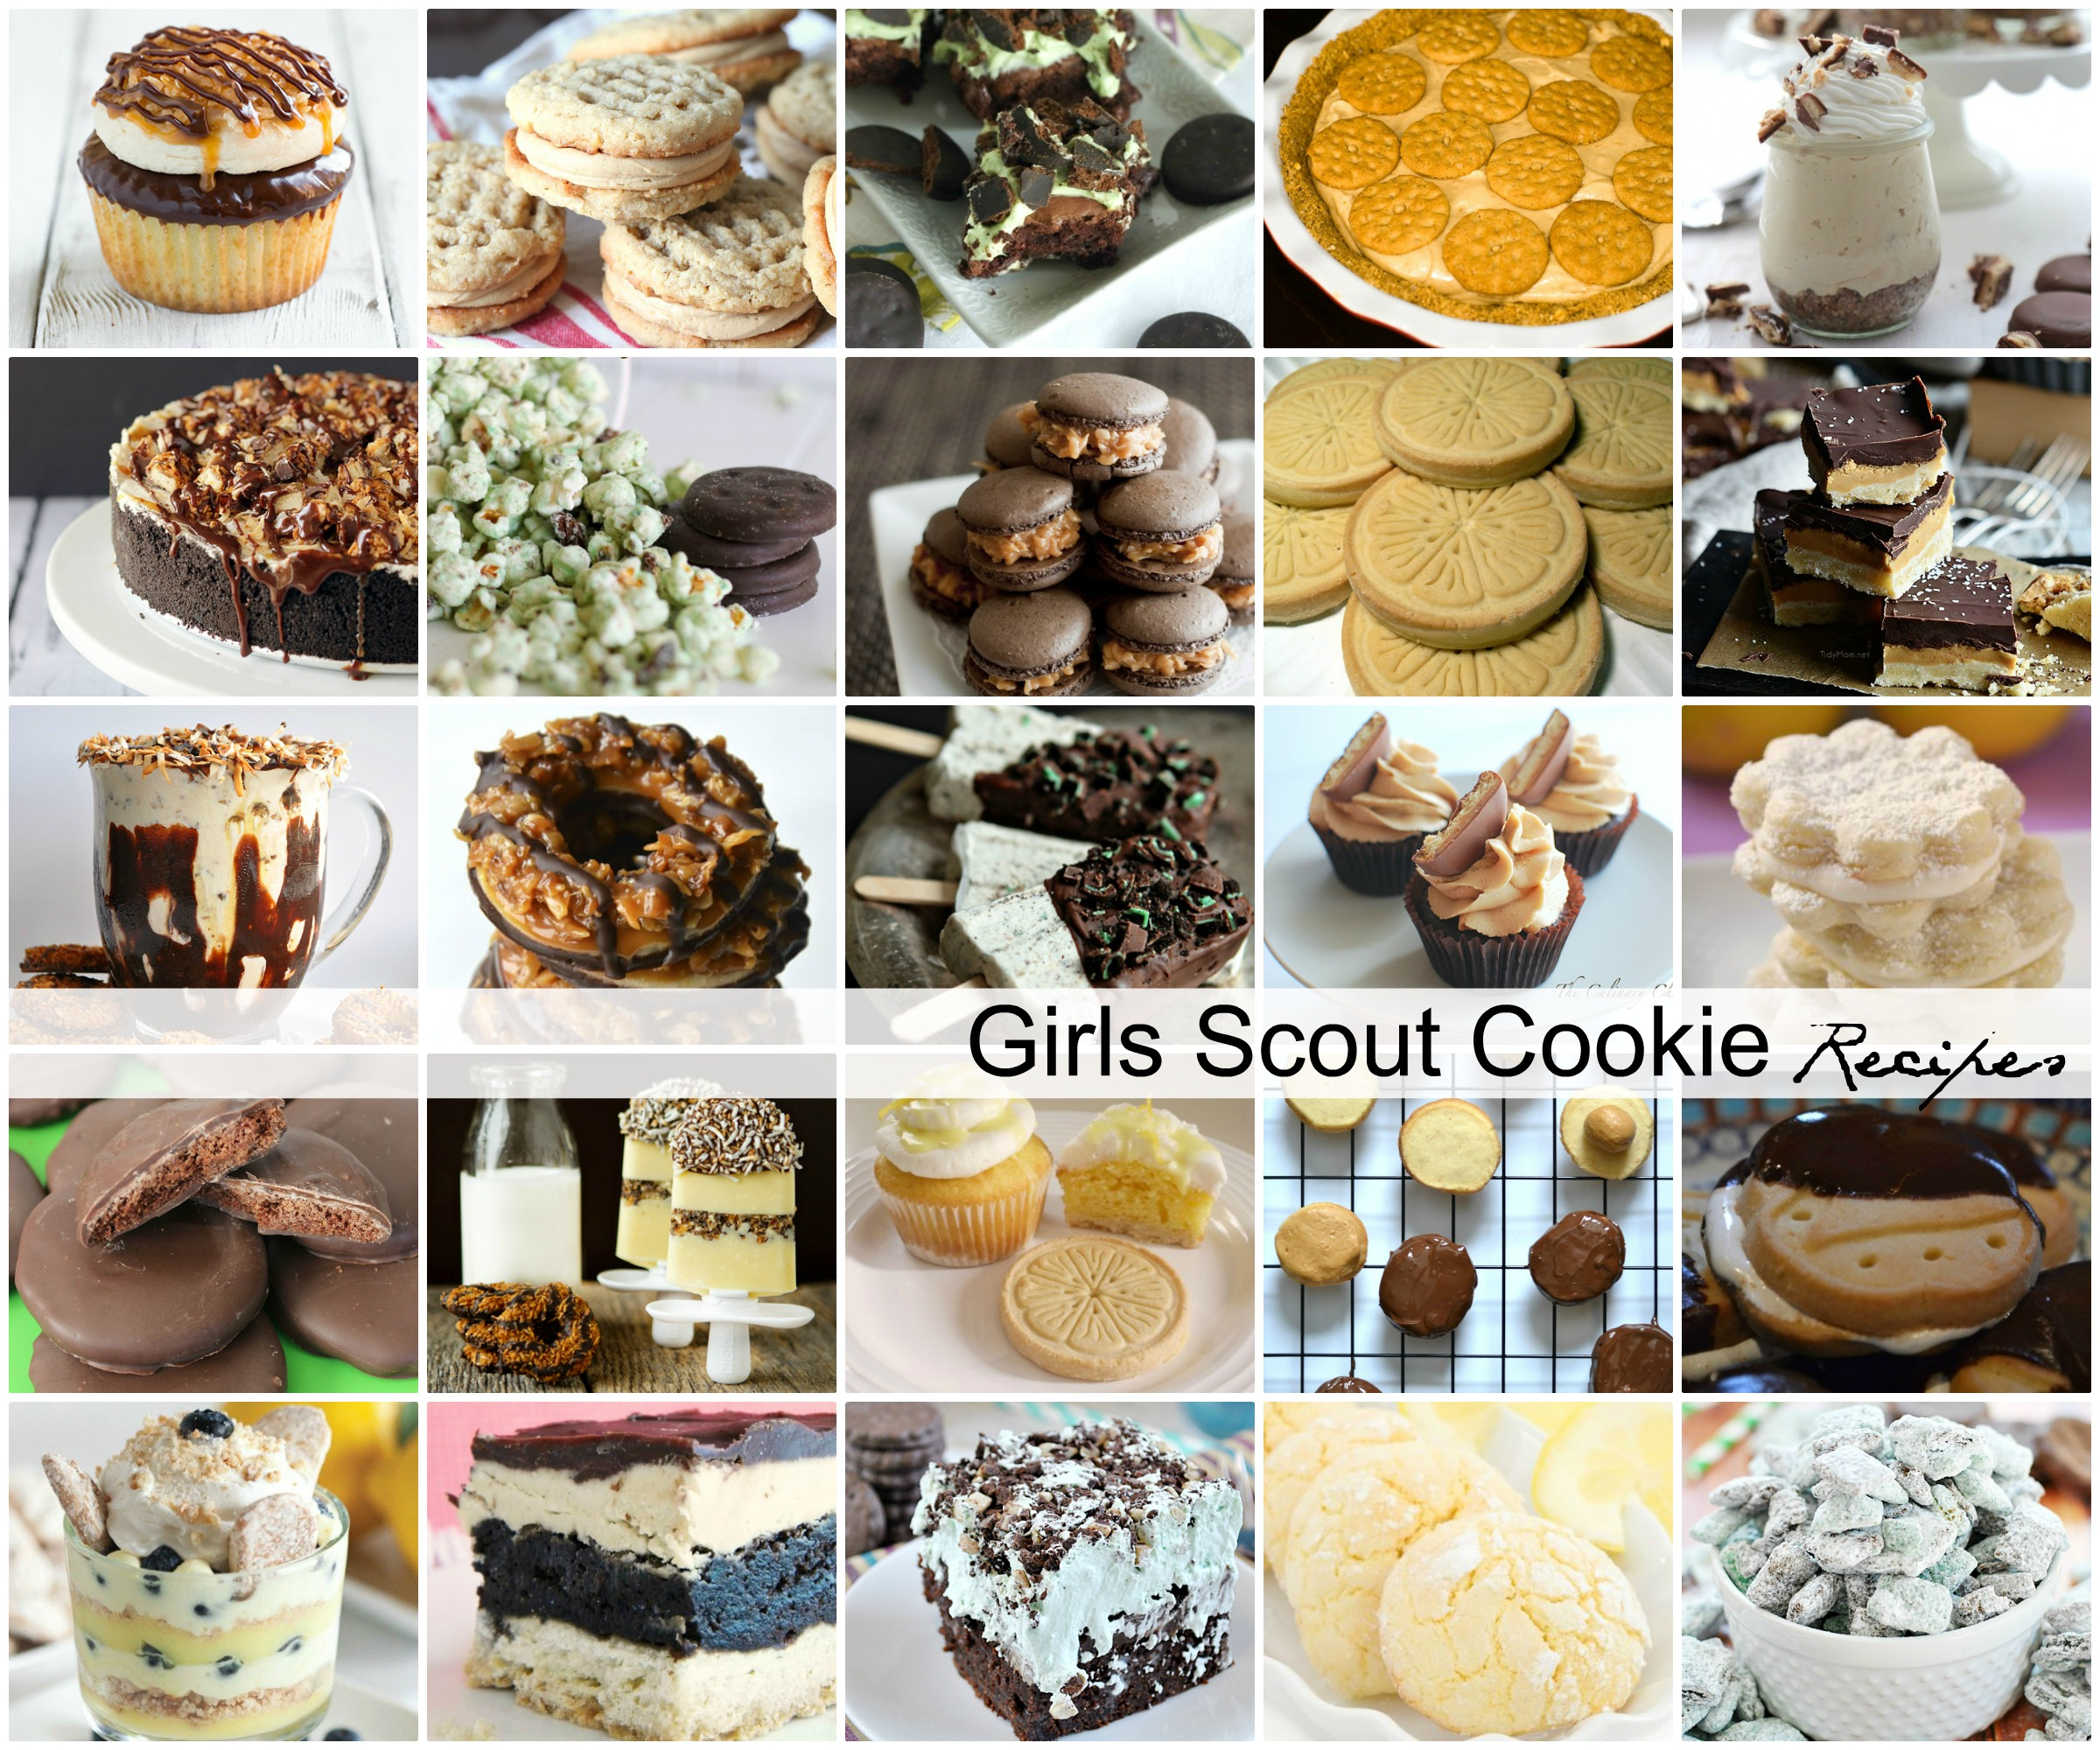 Girl-Scout-Cookie-Recipes-Copycat-1 (1)